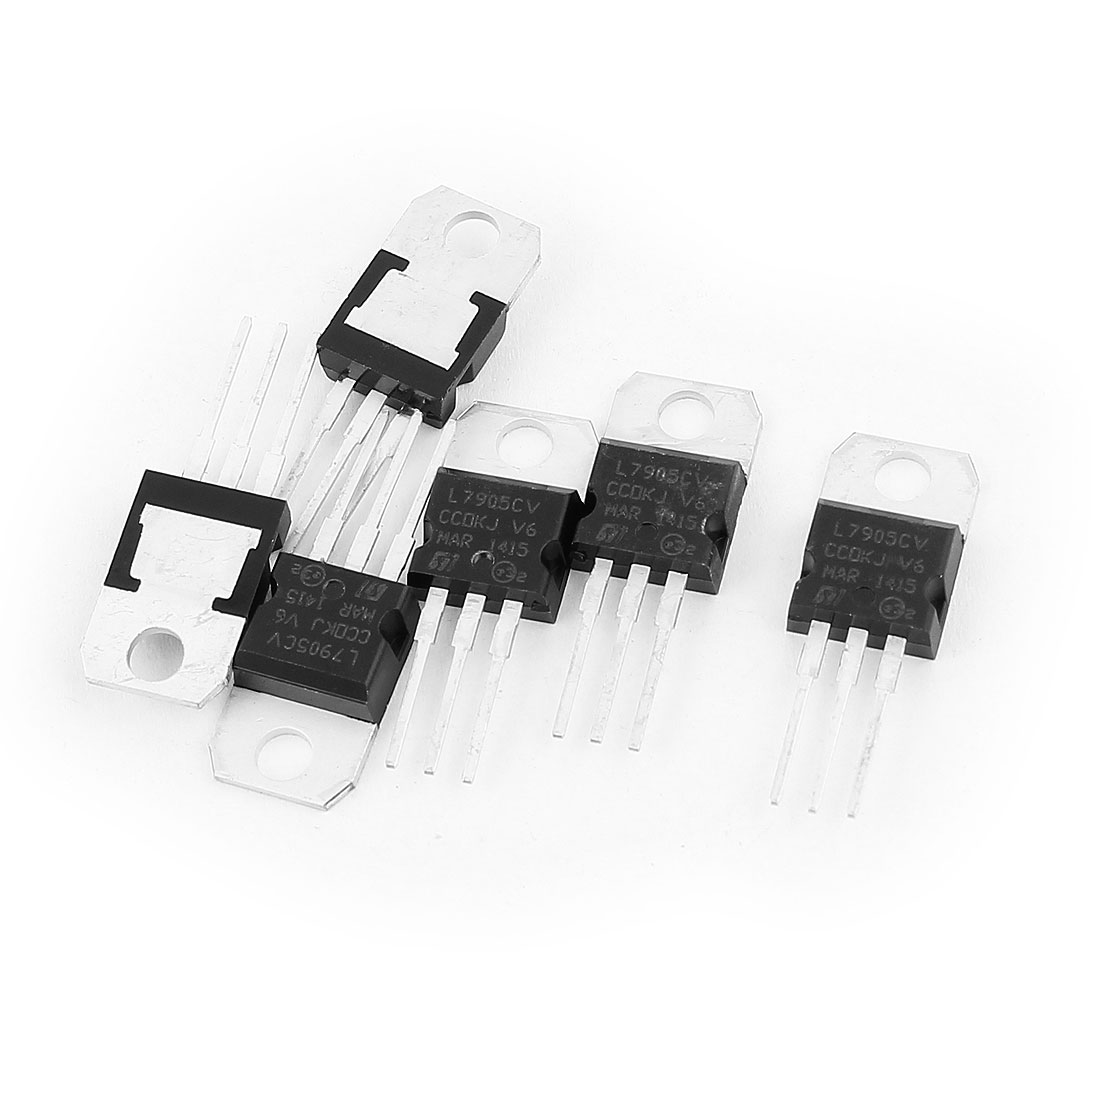 6 Pcs 5V 1A 3 Pin Terminals L7905CV Negative Voltage Regulator TO-220